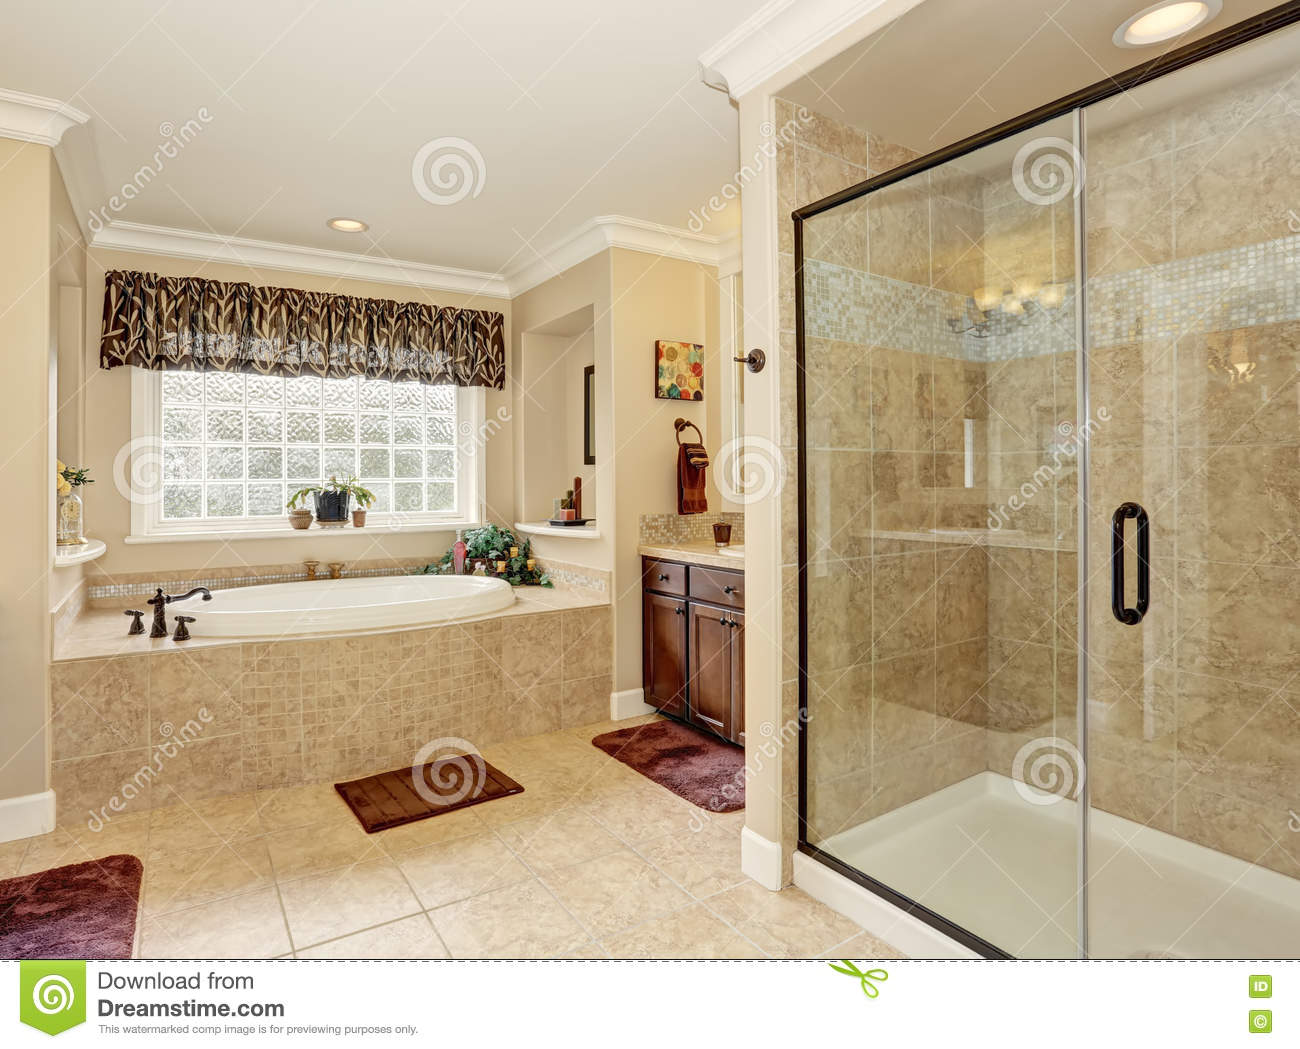 Master Bathroom Design With Beige Tile Stock Image Image Of Floor Brown 75666869